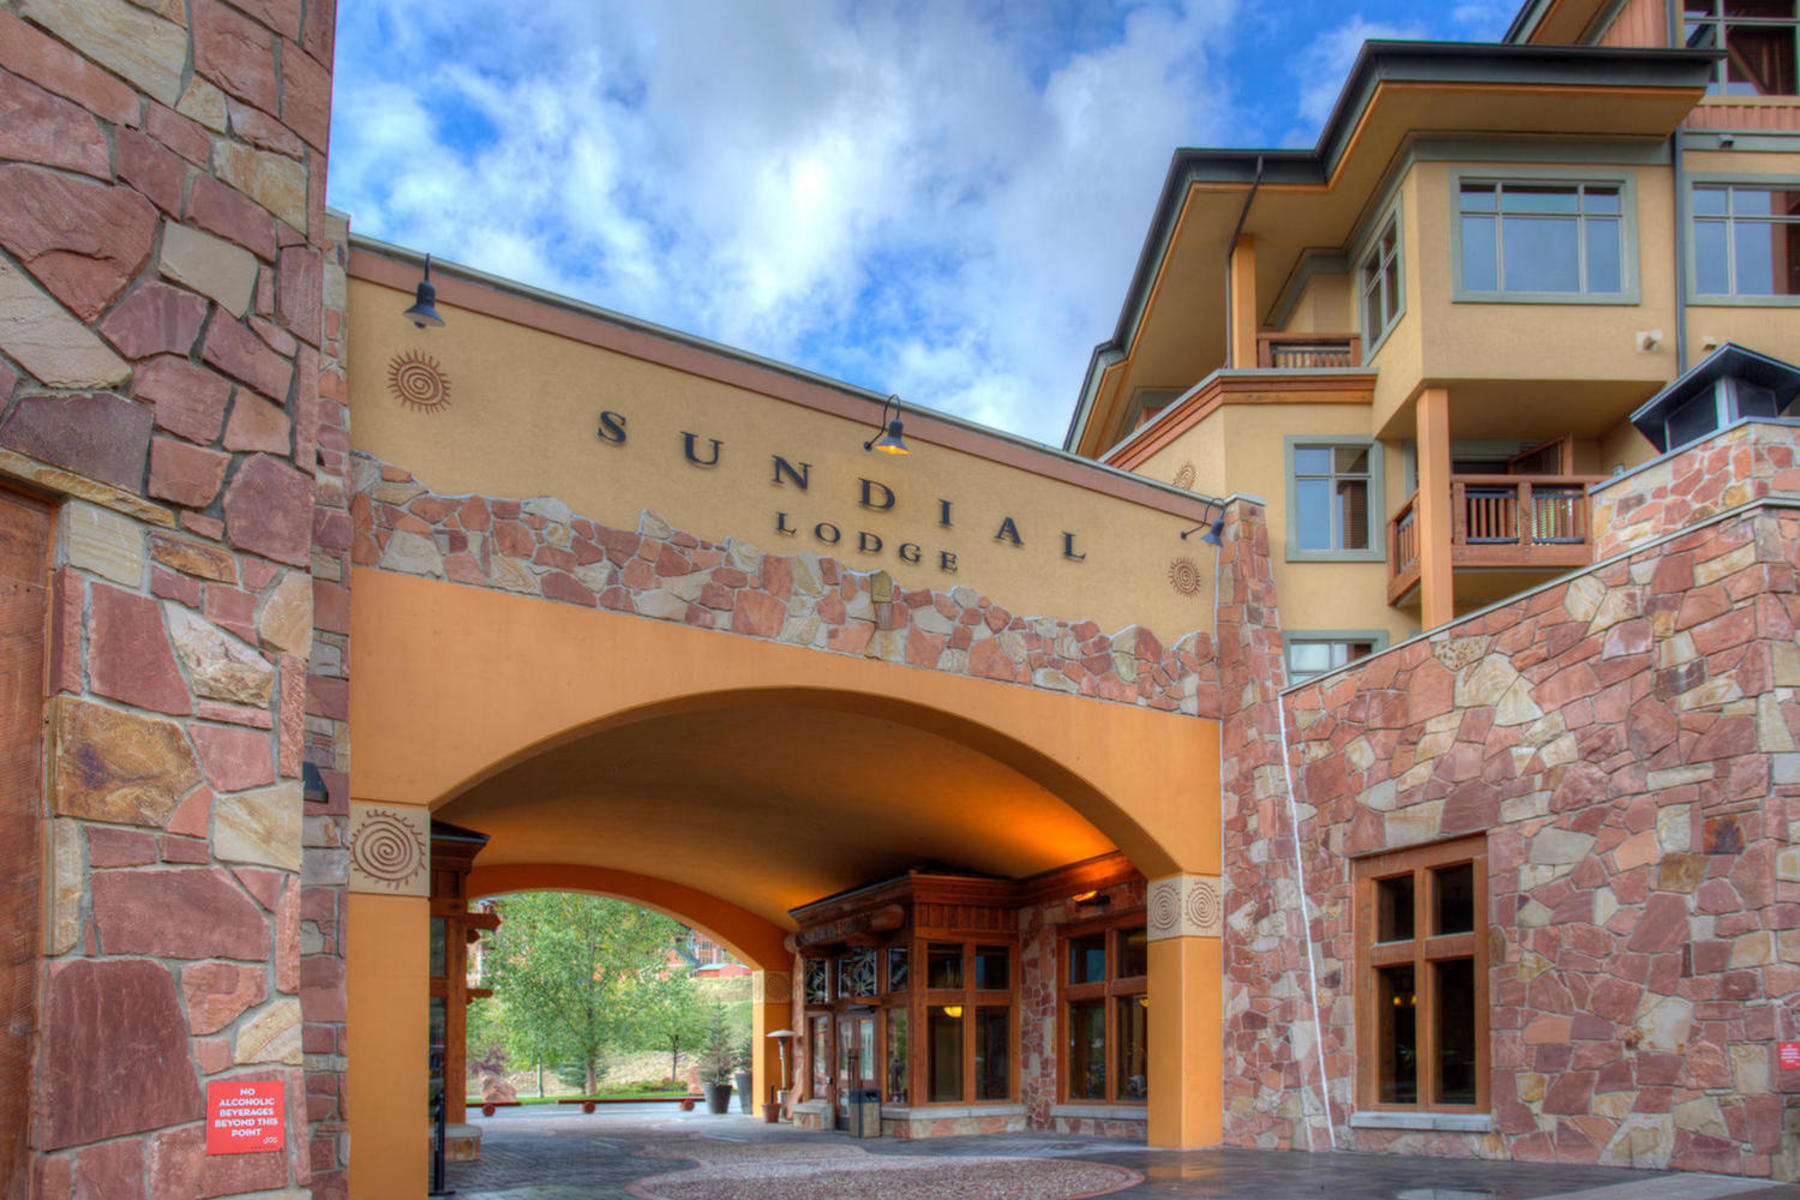 Condominium for Sale at Highly Sought After Location 3720 N Sundial Ct #C305 Park City, Utah, 84098 United States